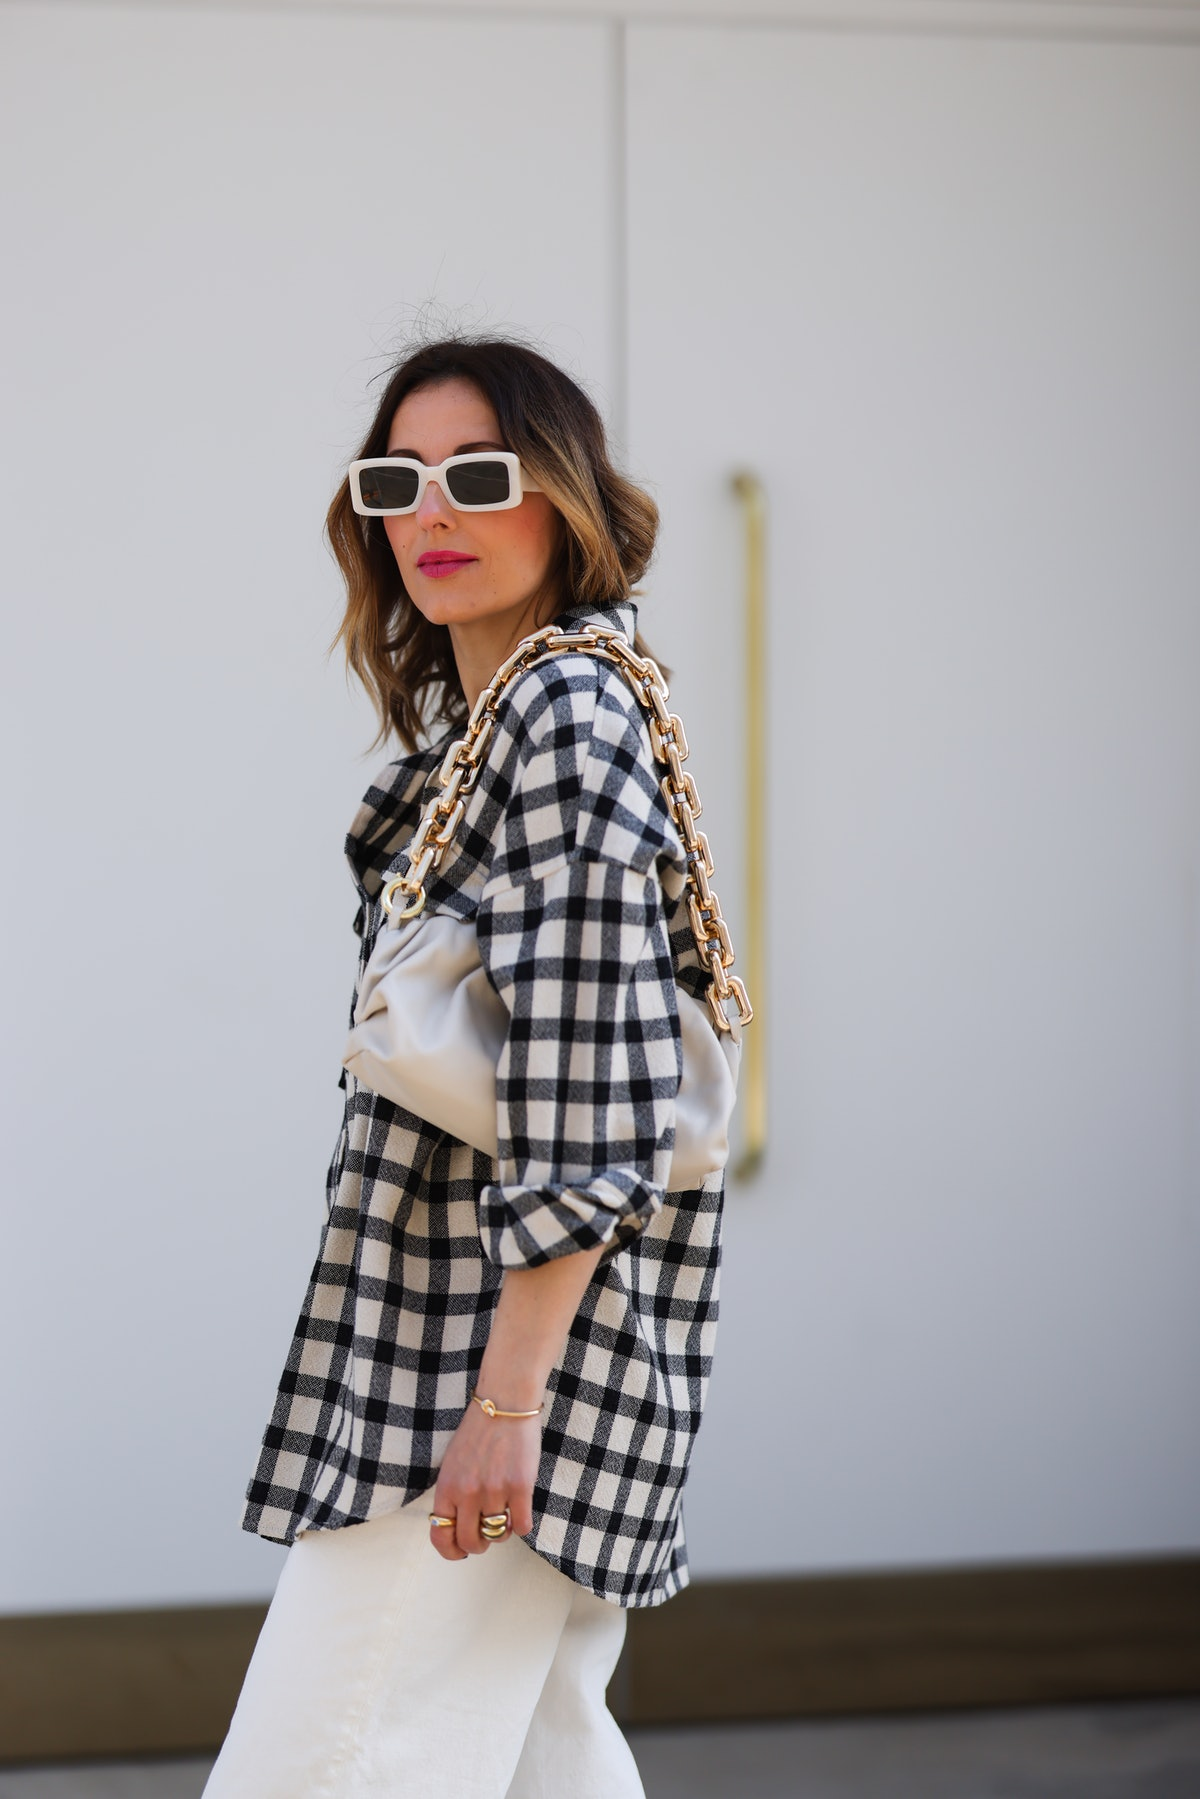 Elise Soho walking in the street and wearing a black and white Checkerboard Shirt